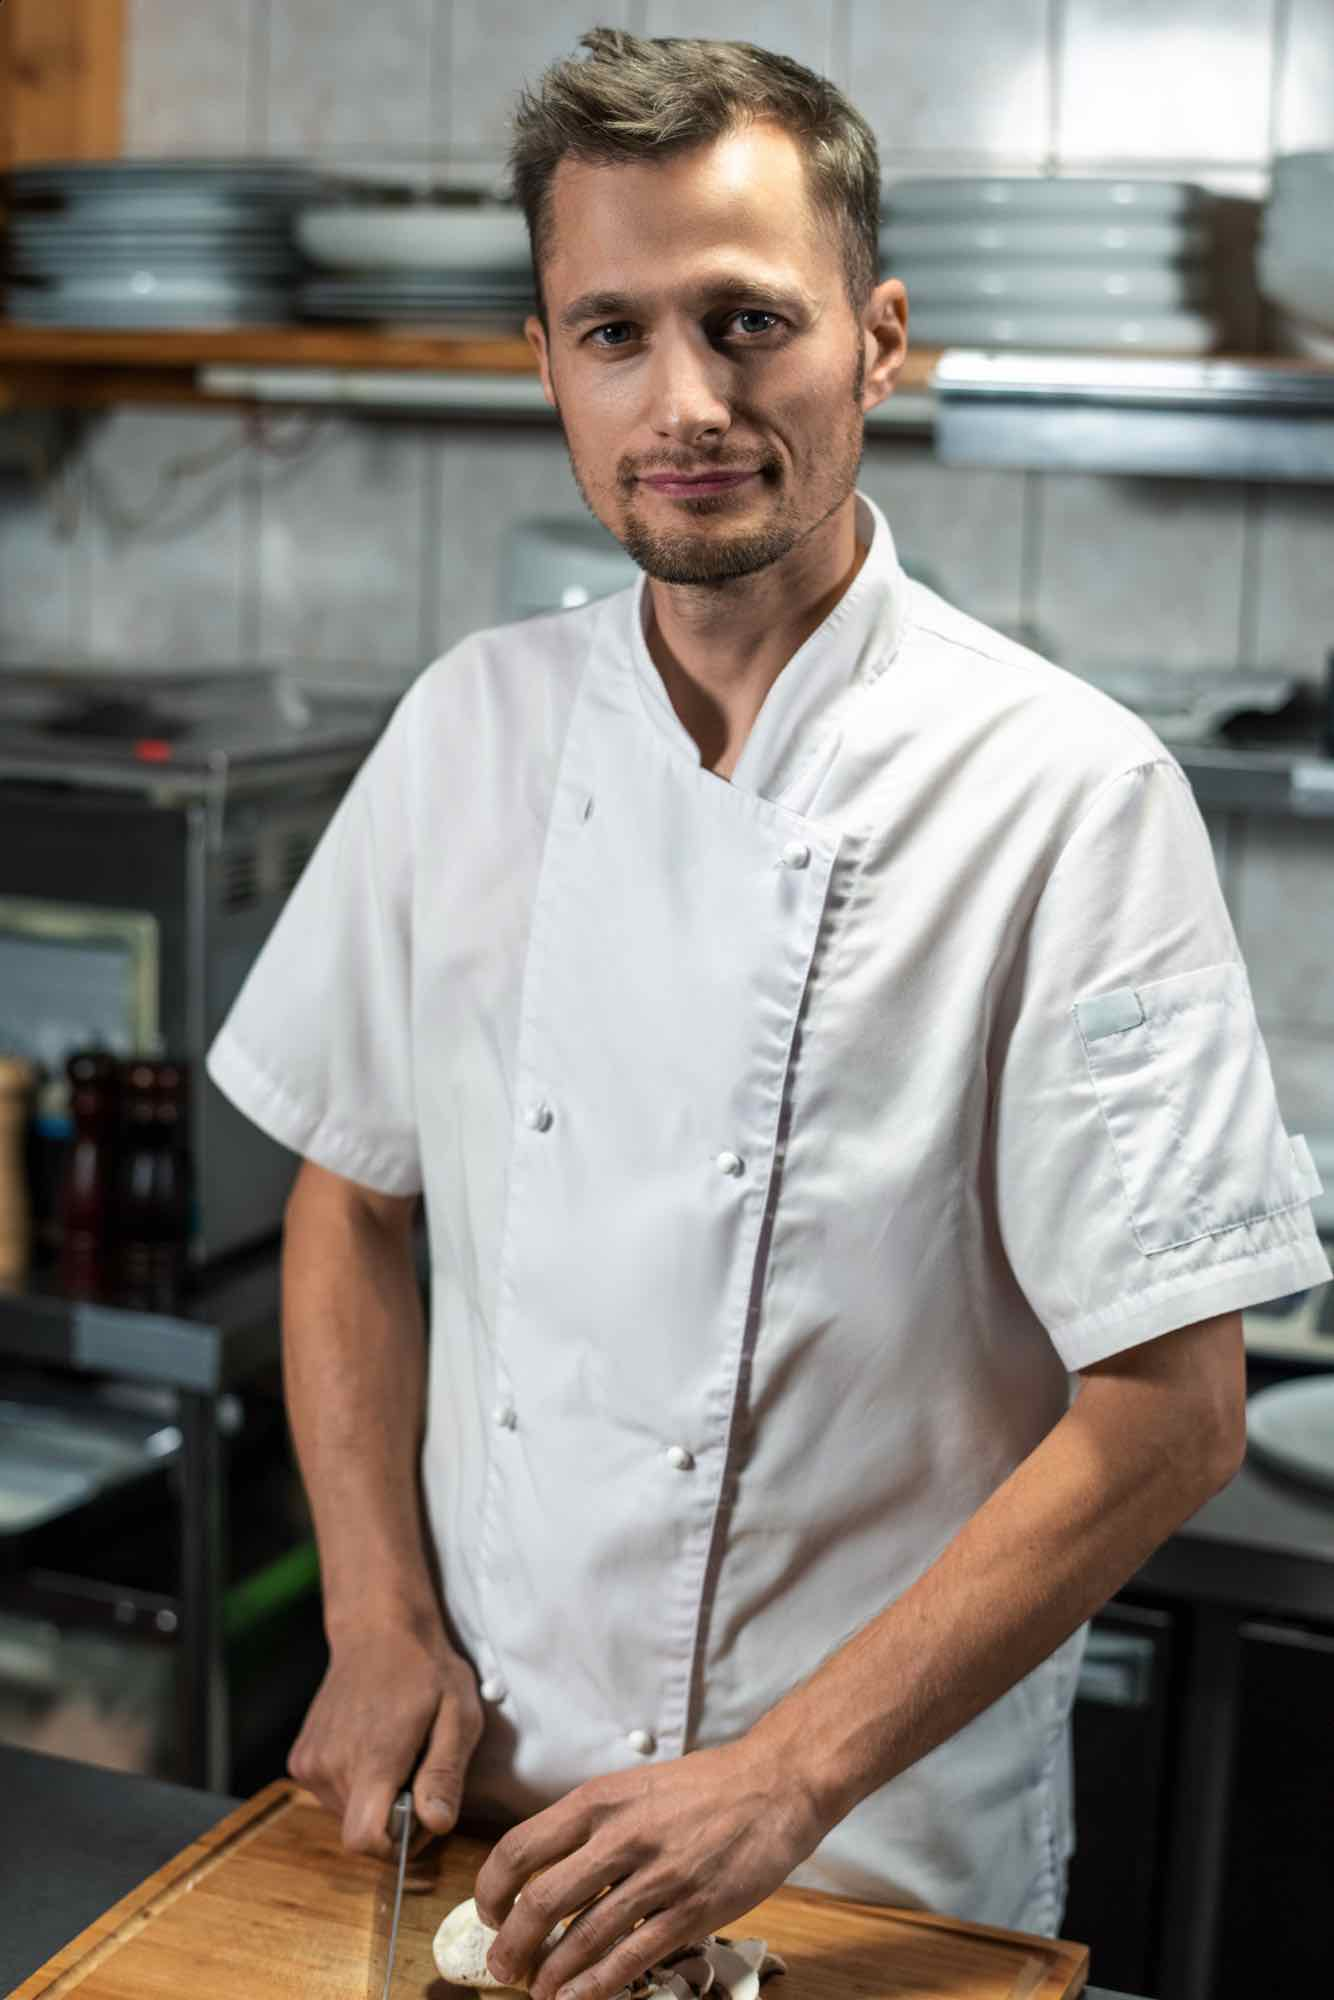 young-professional-male-chef-in-white-uniform-look-VATDR6J.jpg